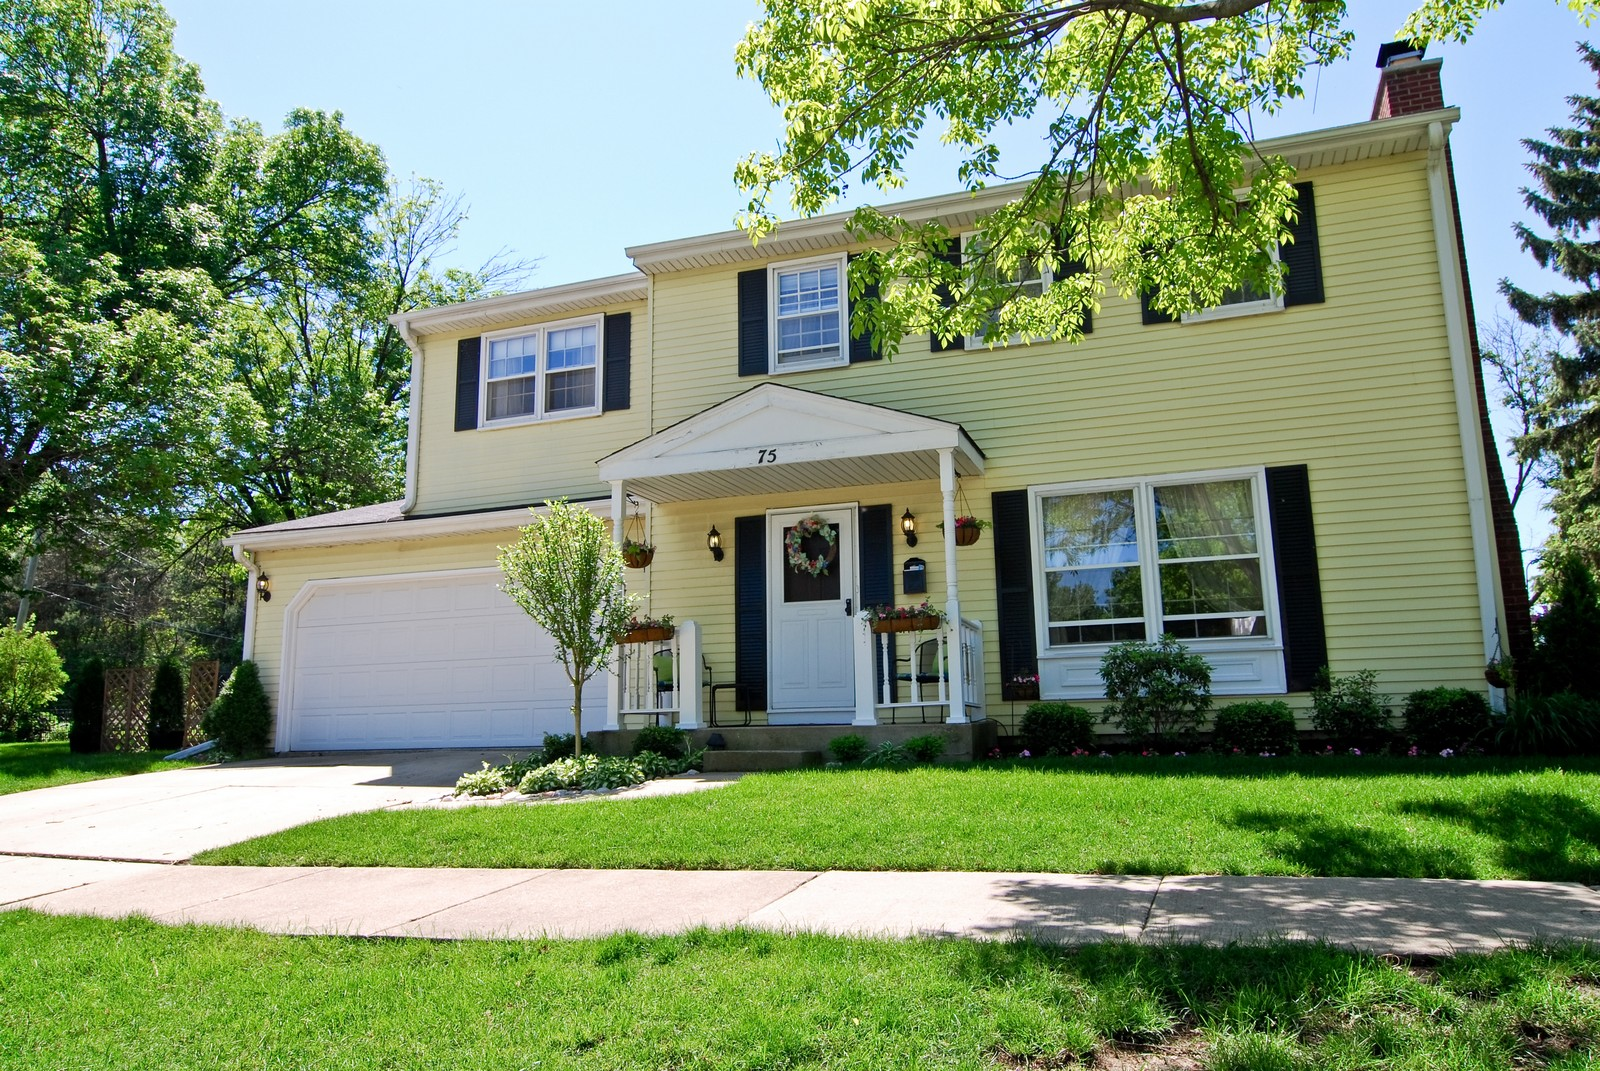 Real Estate Photography - 75 Newton, Glen Ellyn, IL, 60137 - Front View